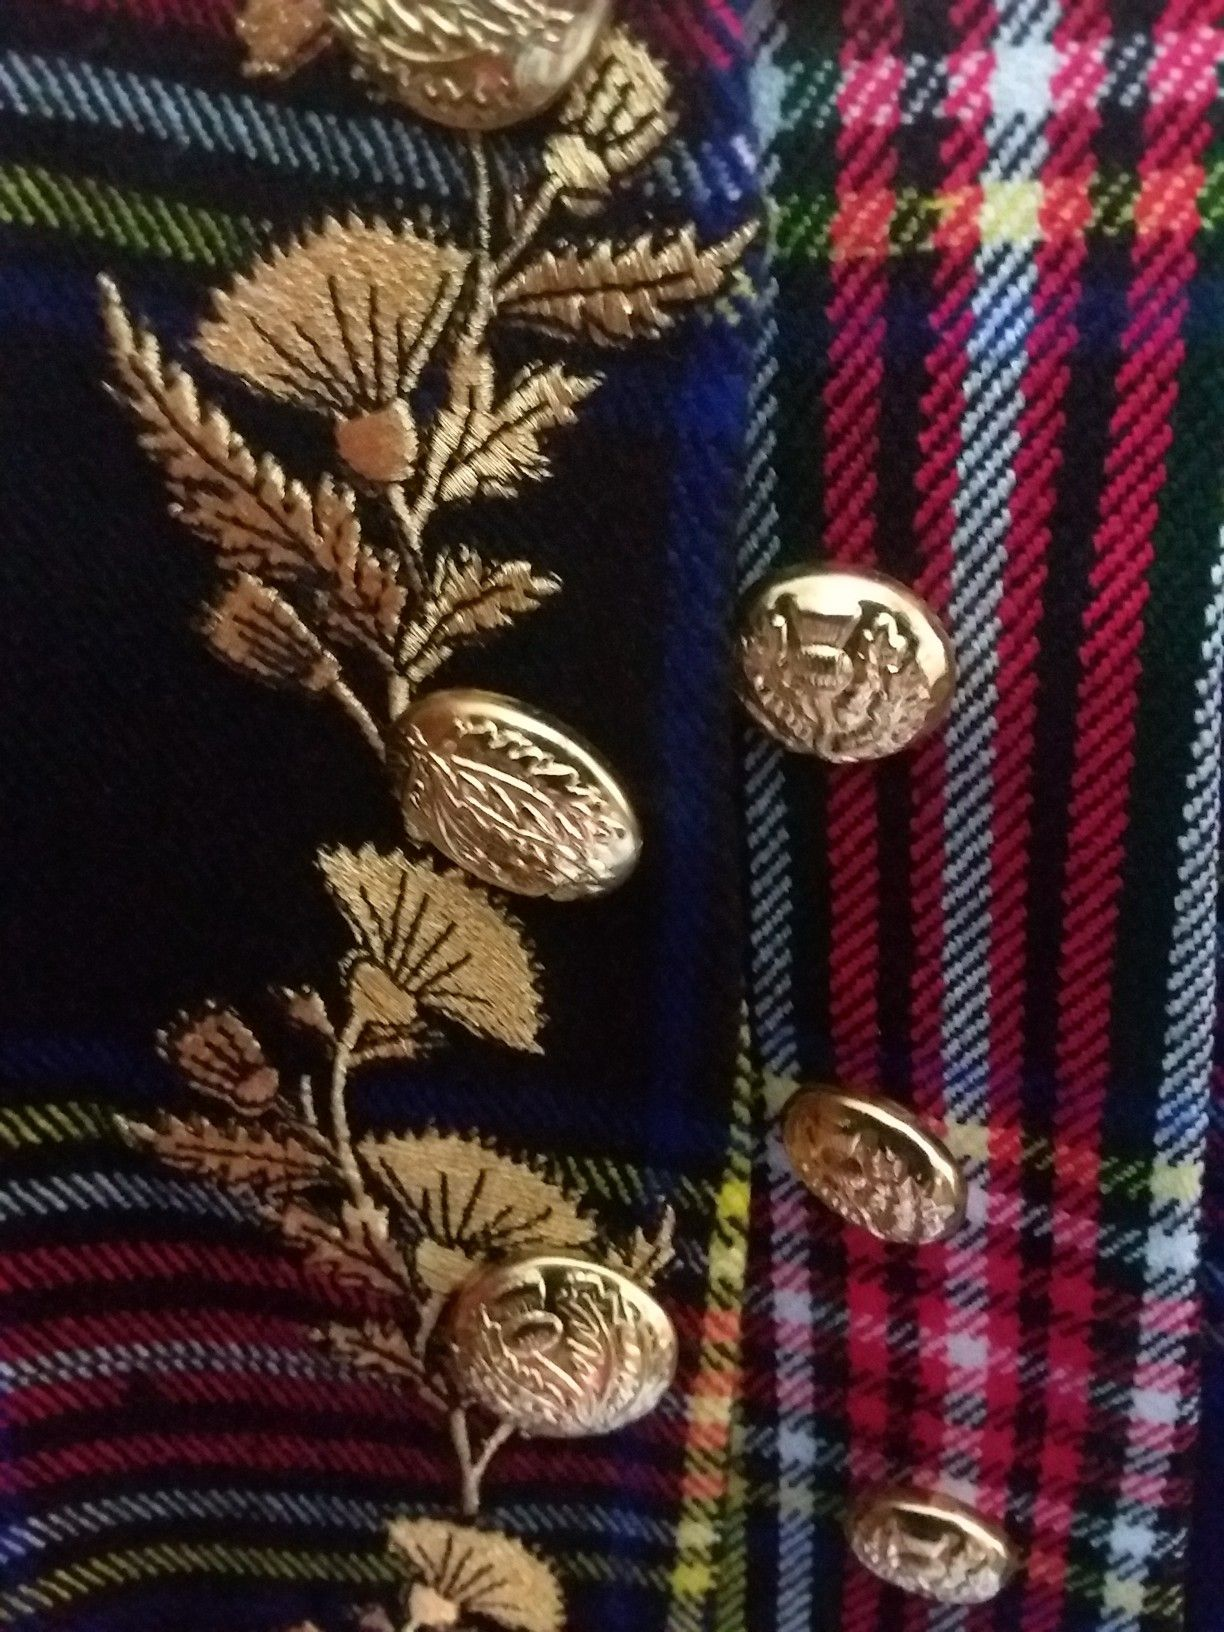 Gold tilla thistle embroidery on my frock coat 1745 style.   comejoinourcampaign jacobitetours.co.uk a0635a843